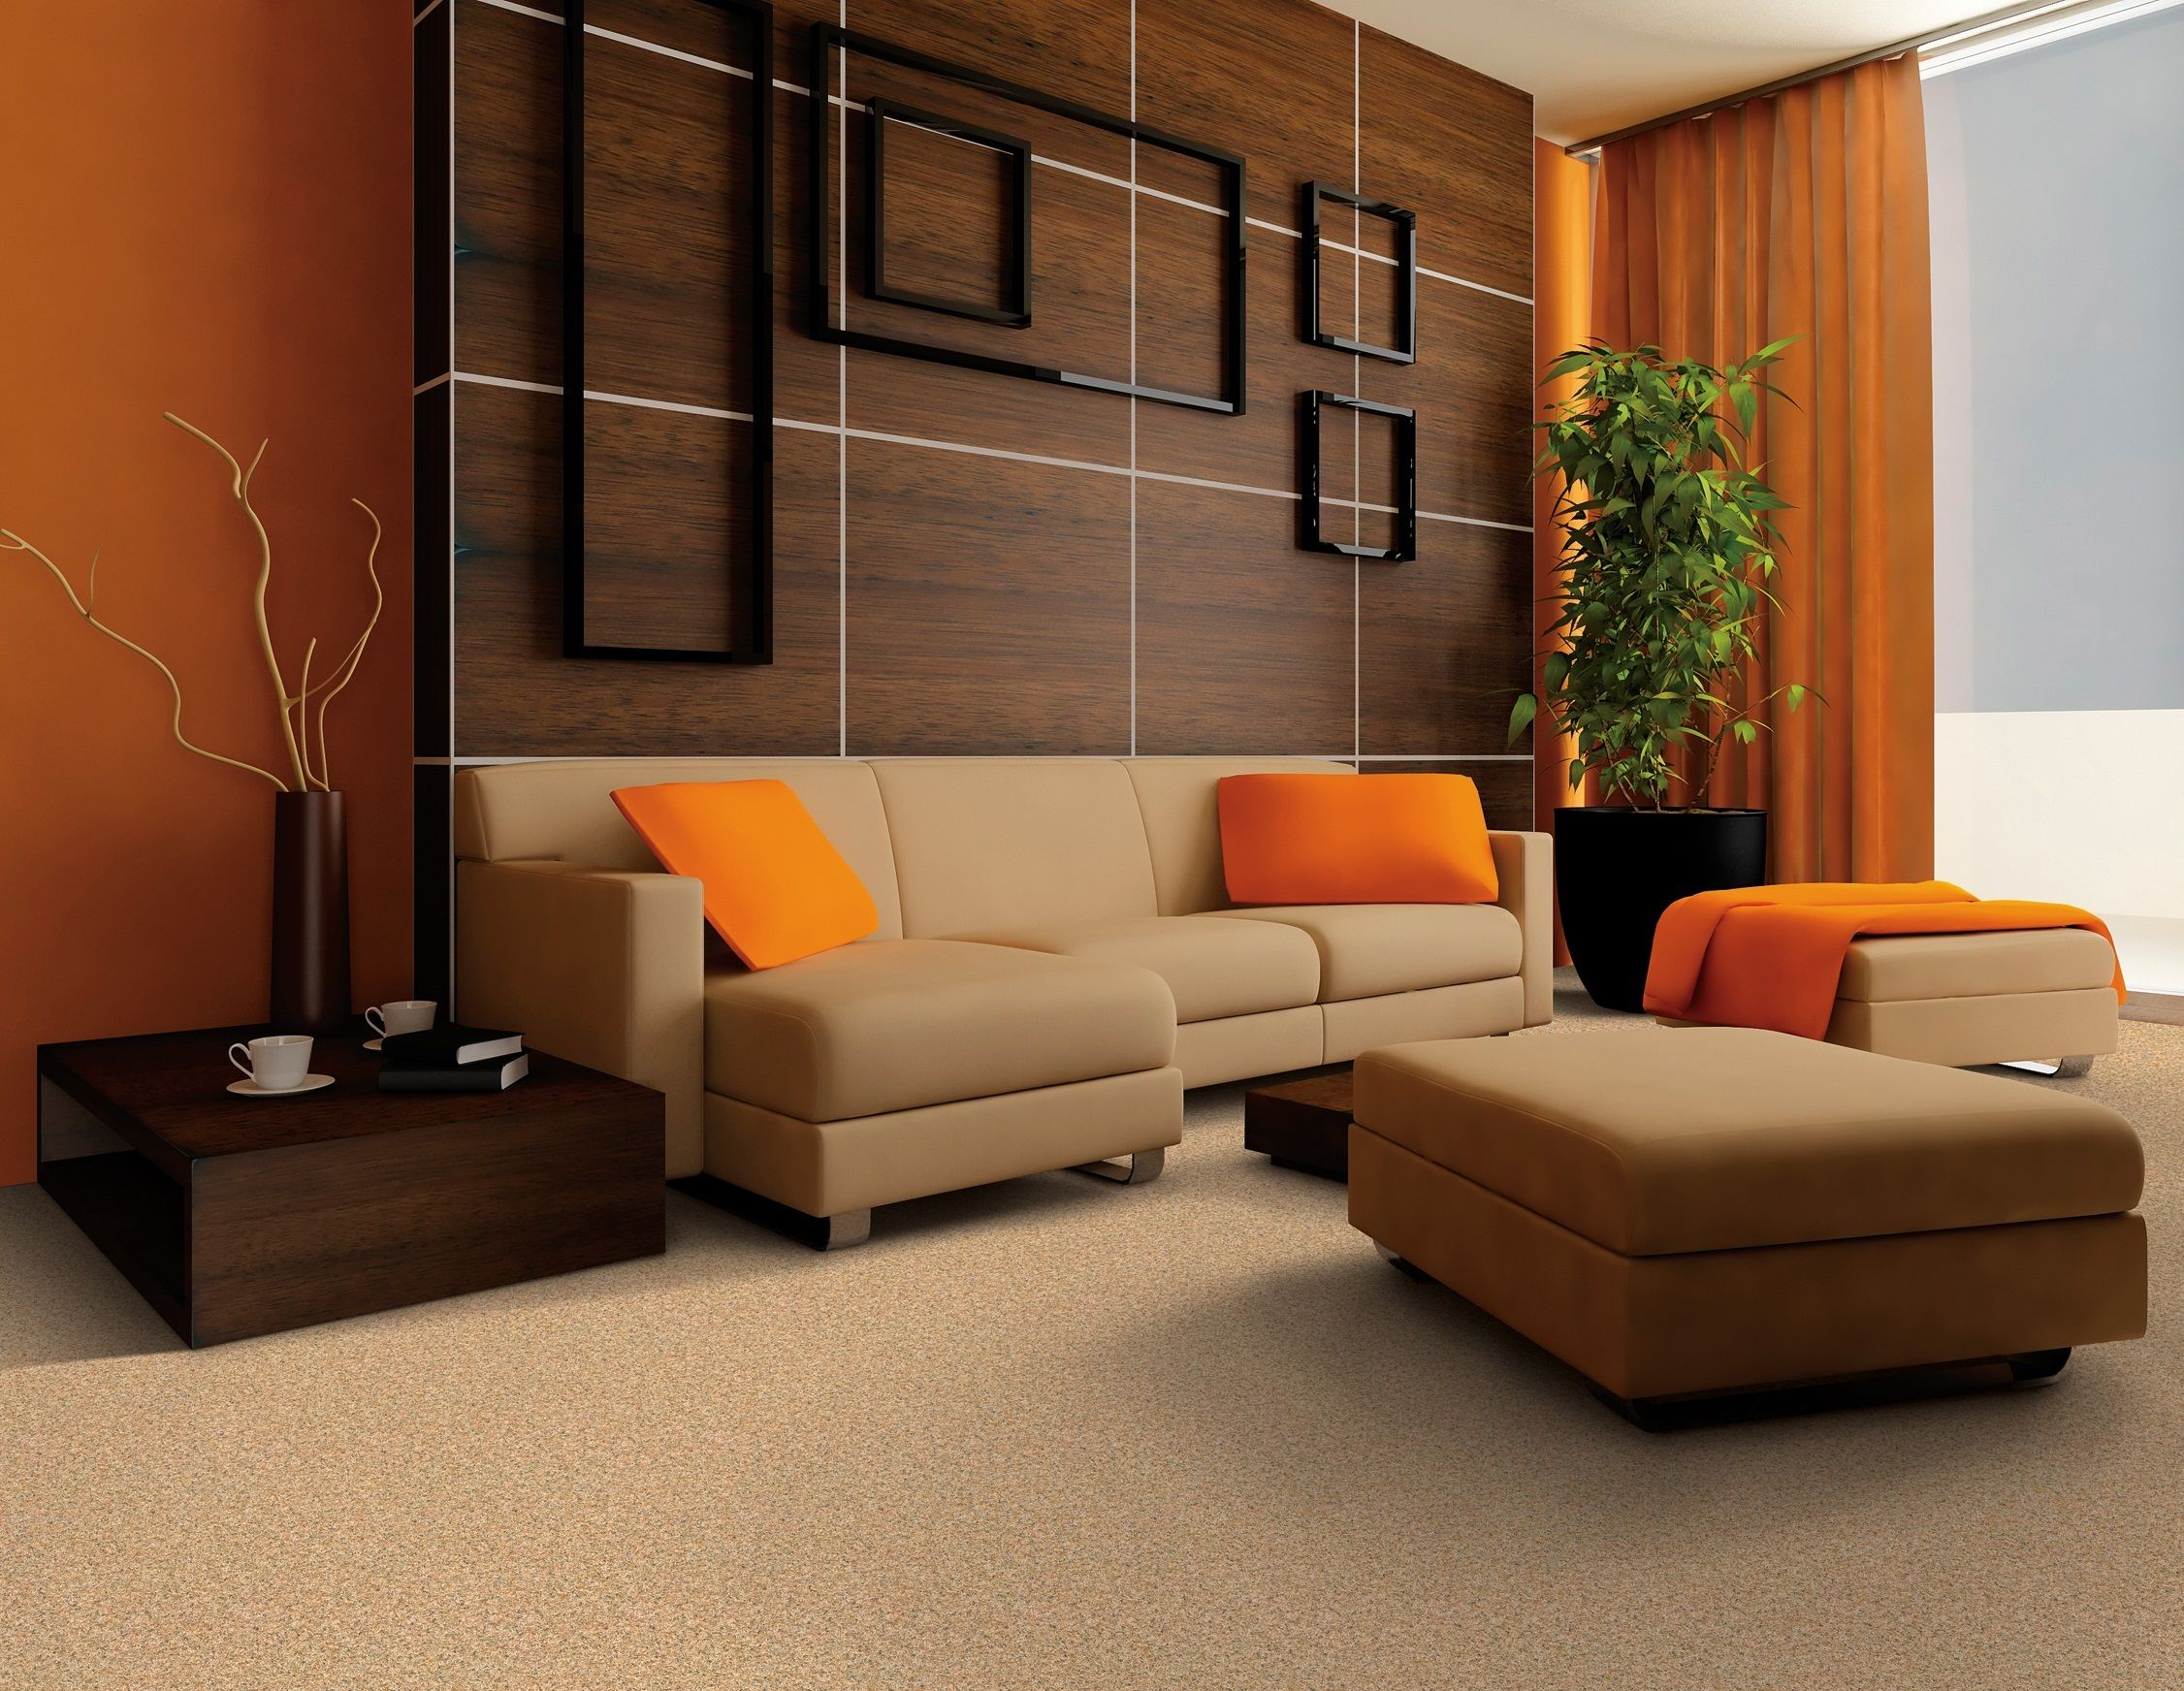 Living Room Decor Orange And Brown warm color wall paint and brown shades sofa design ideas for